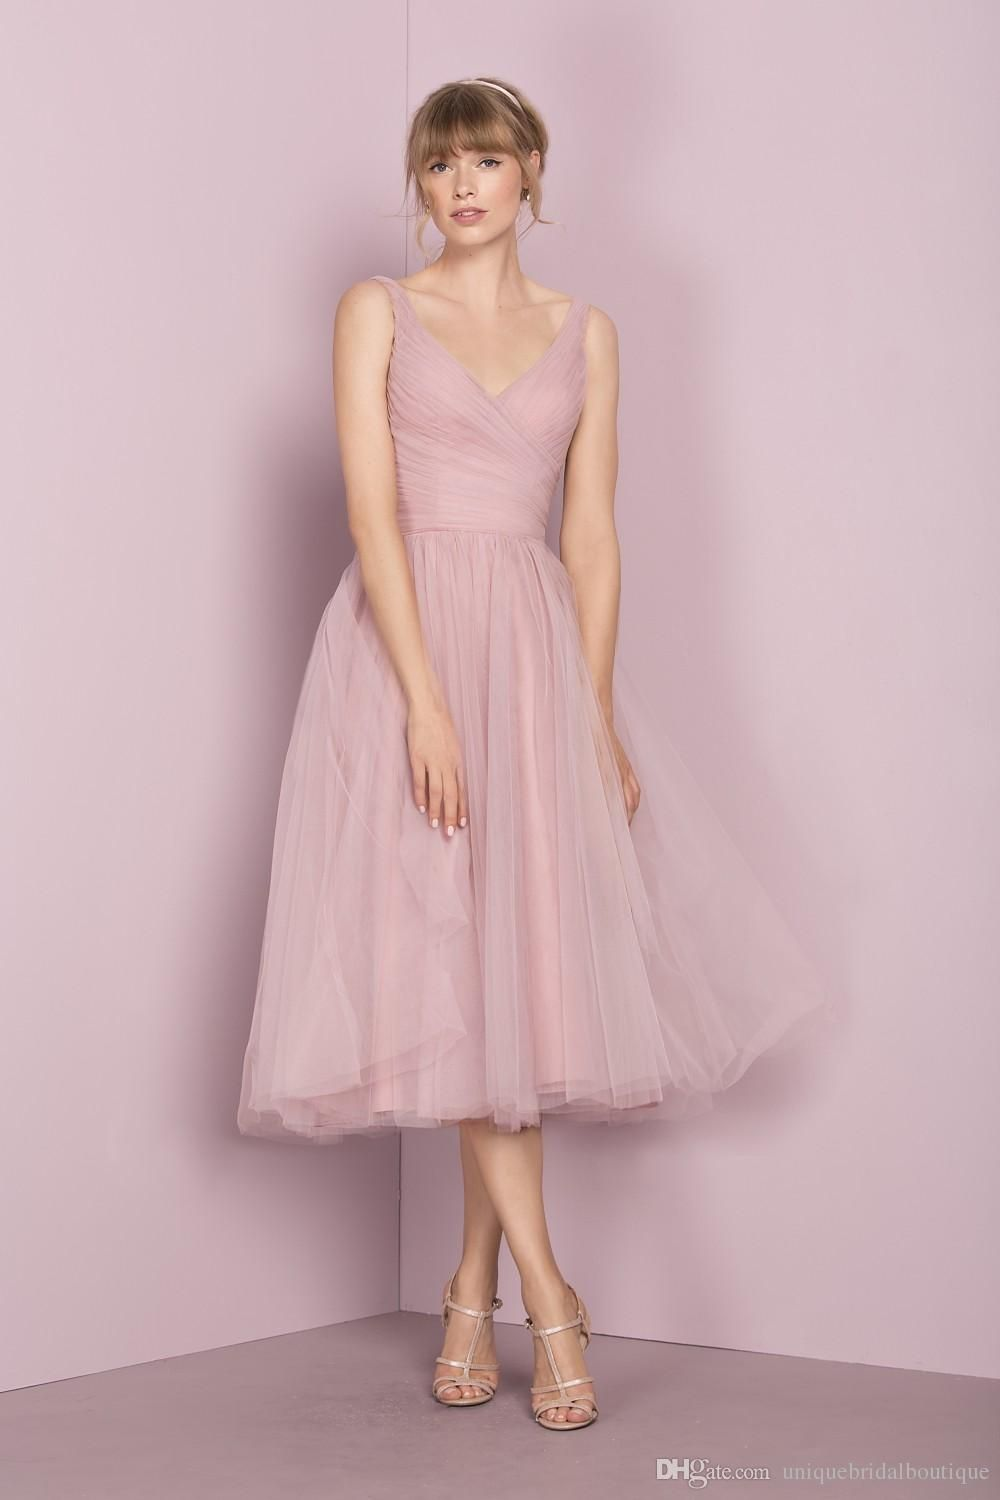 Bridesmaid Dresses Nice Pink Dress Bridesmaid Elegant A Line V Neck Spaghetti Strap High Low Formal Party Gowns For Wedding Guest Robe De Soiree 2019 Weddings & Events